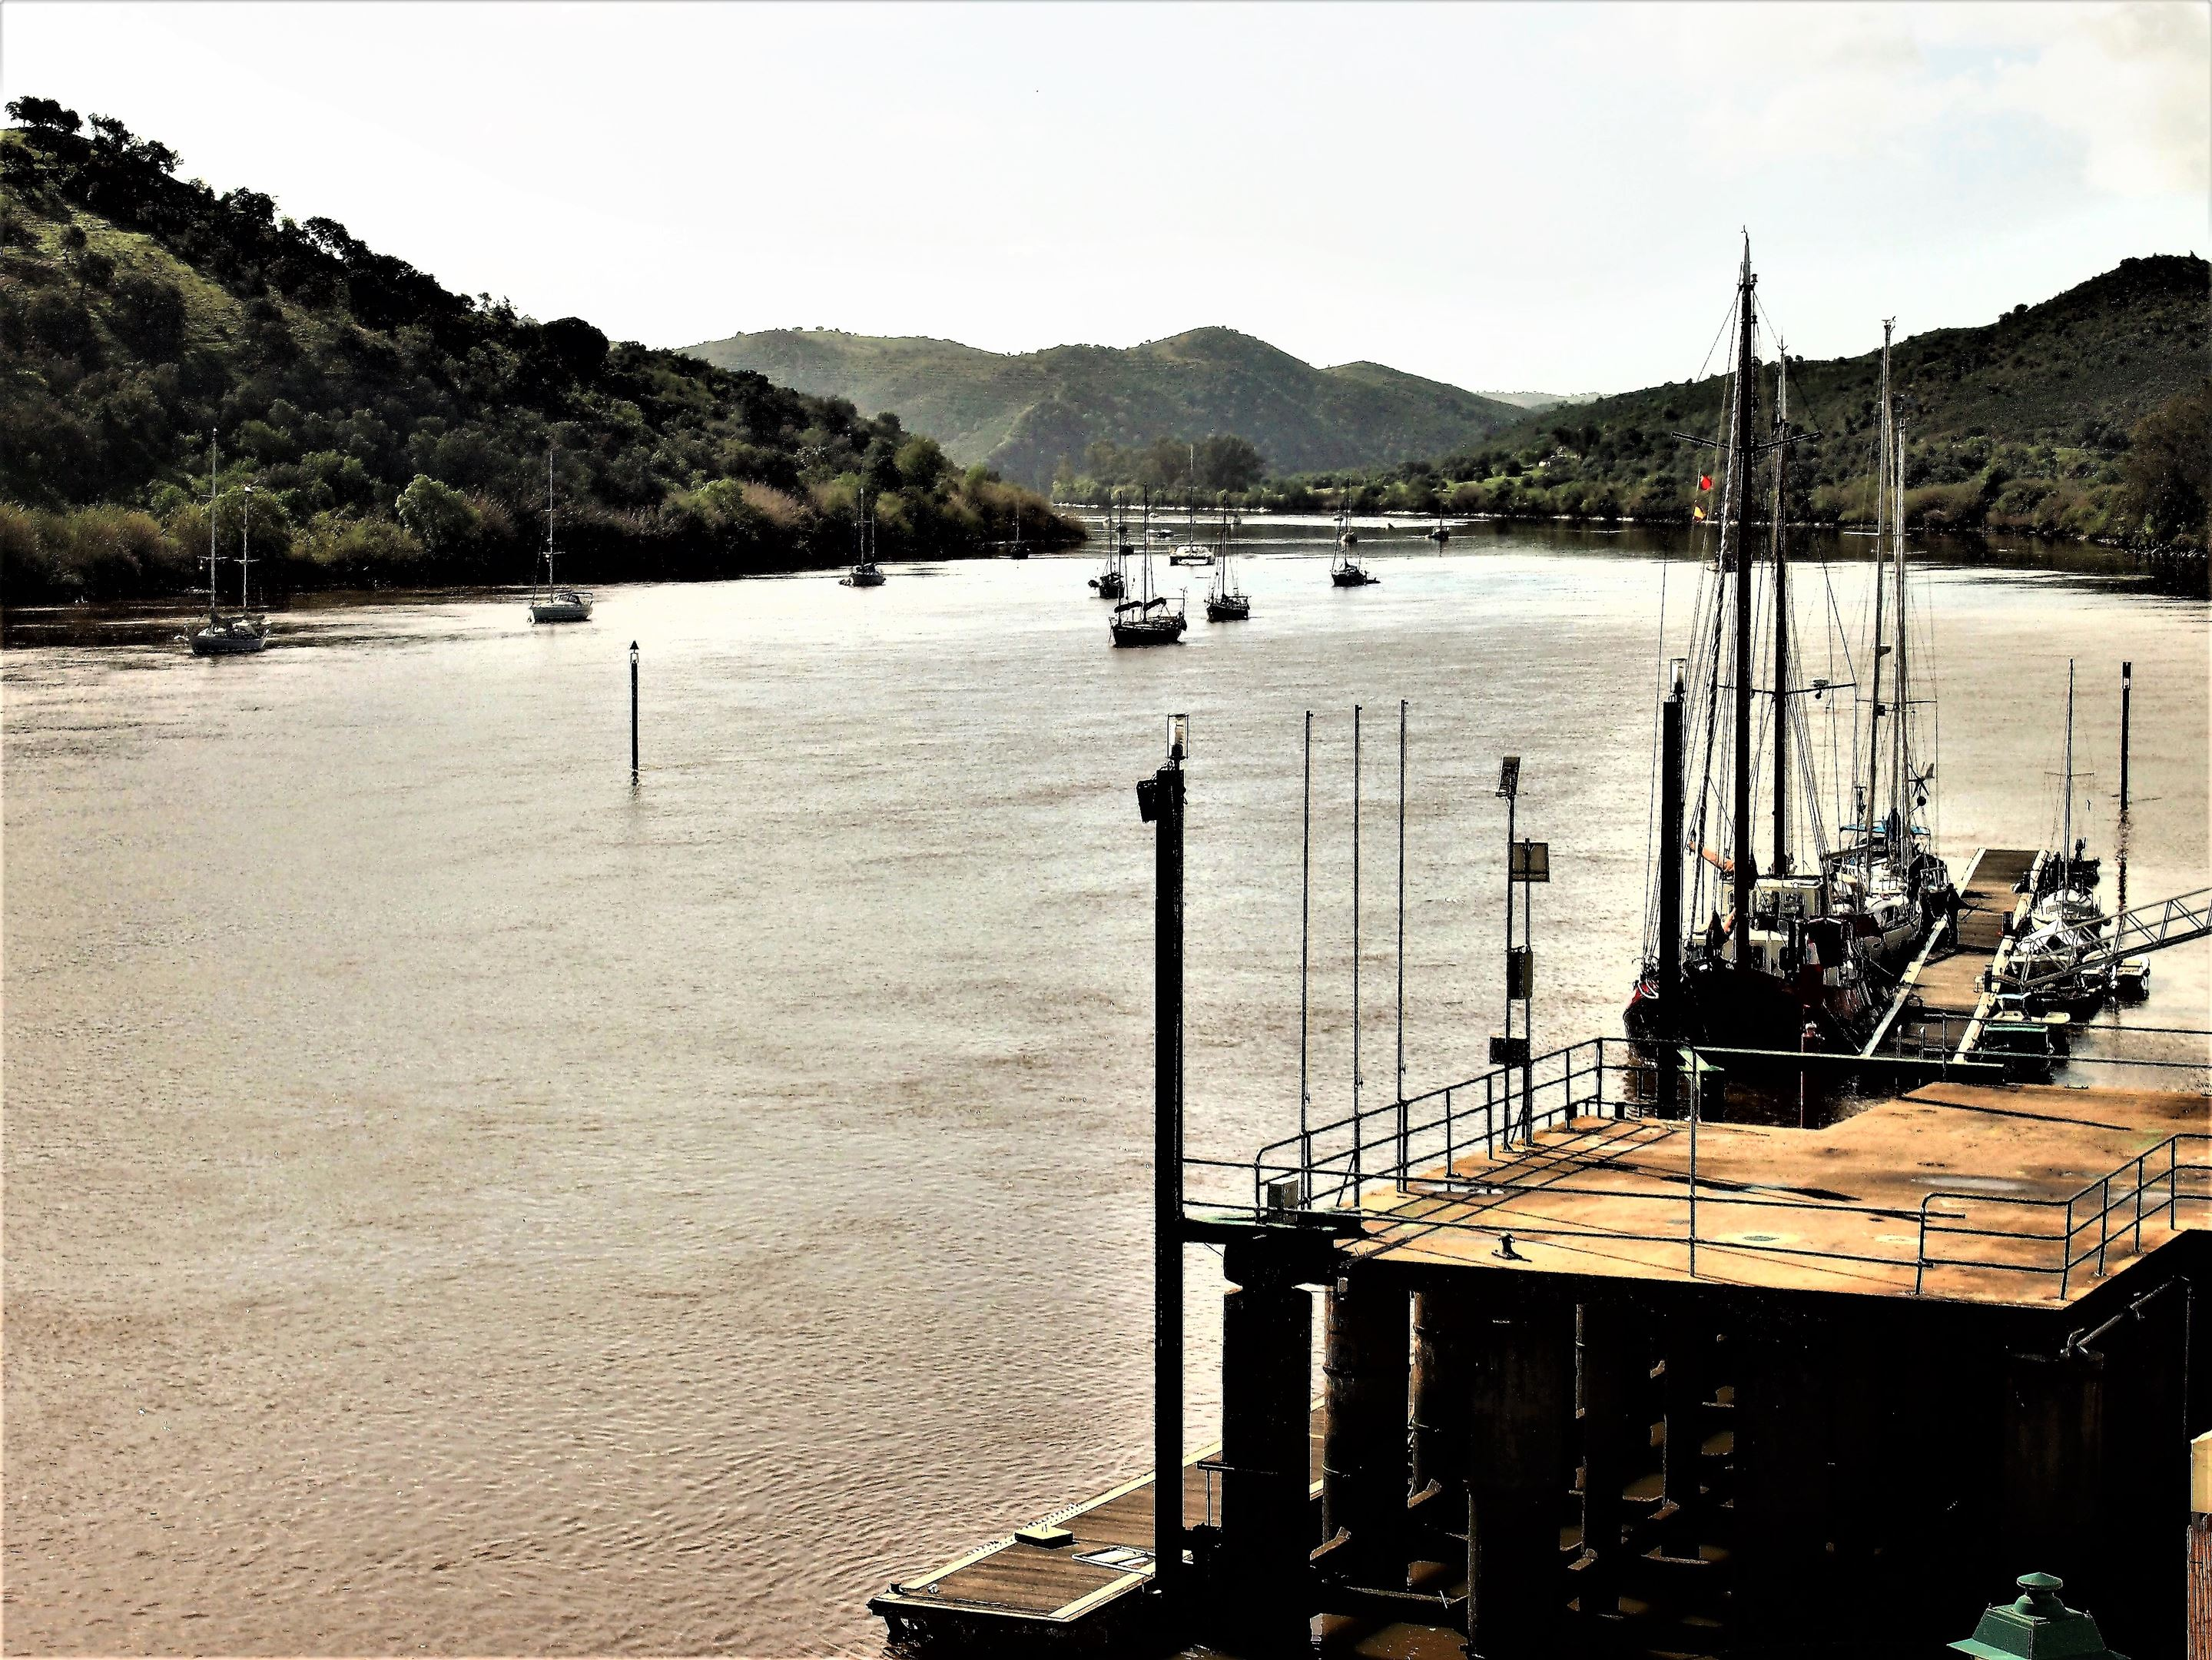 The Guadiana River, Alcoutim where you can take a number of excursions on the river